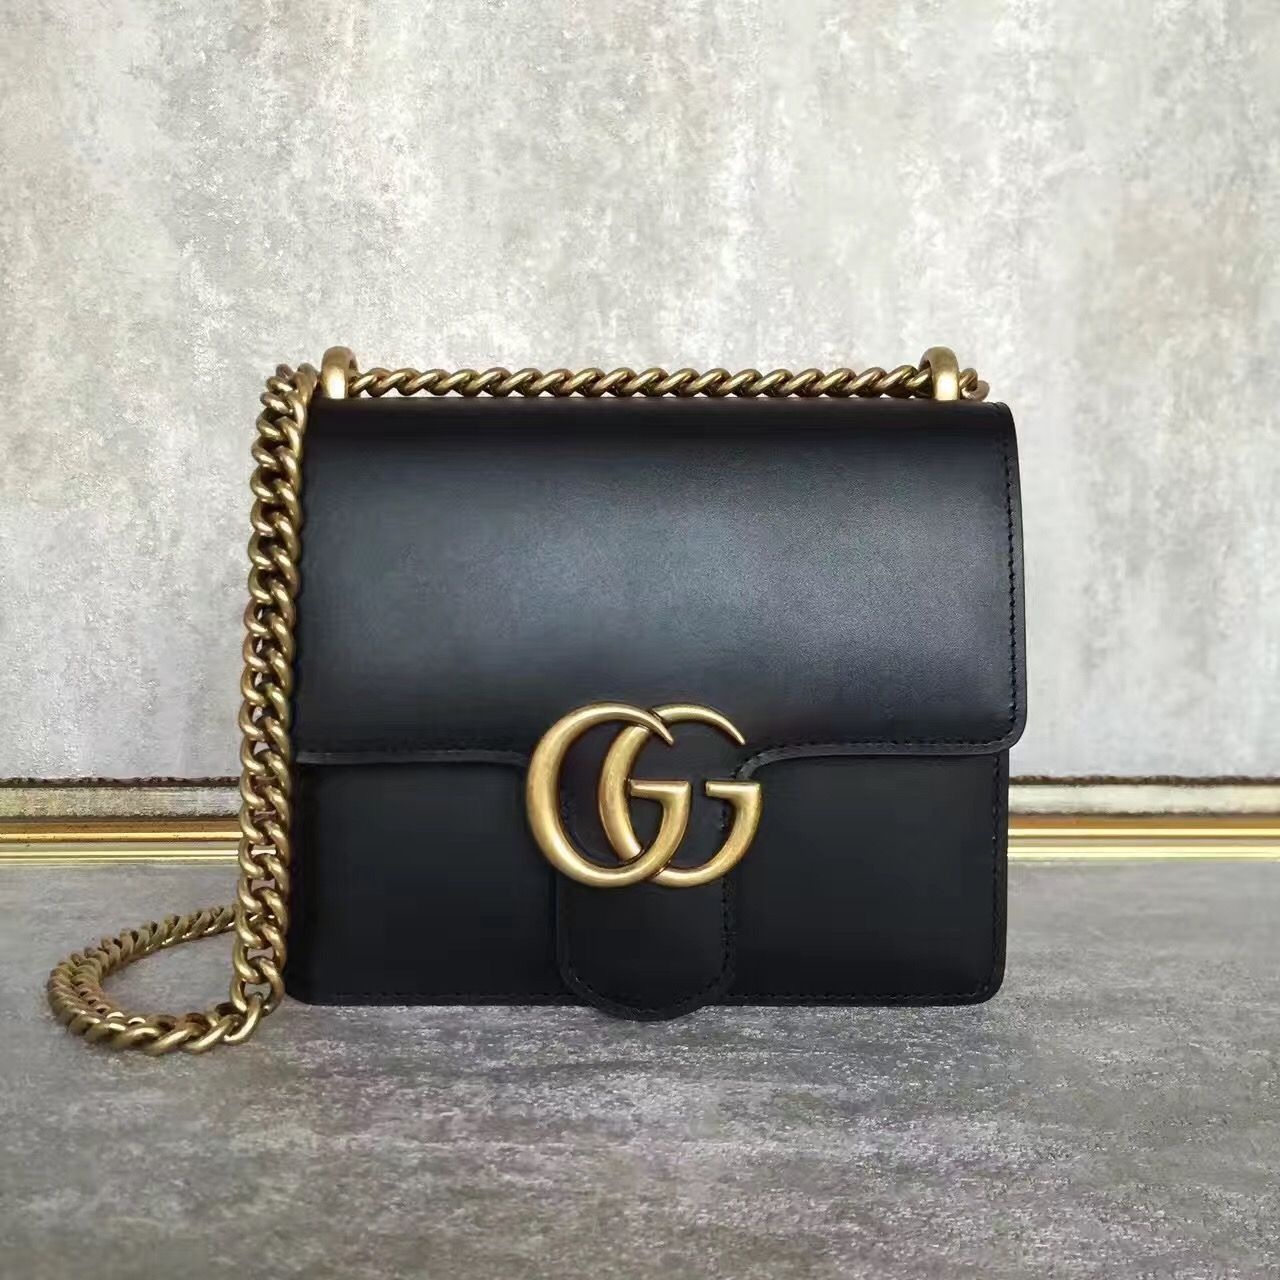 fce6672d87e0 Gucci woman chain bag cross body flap box bag original leather ...